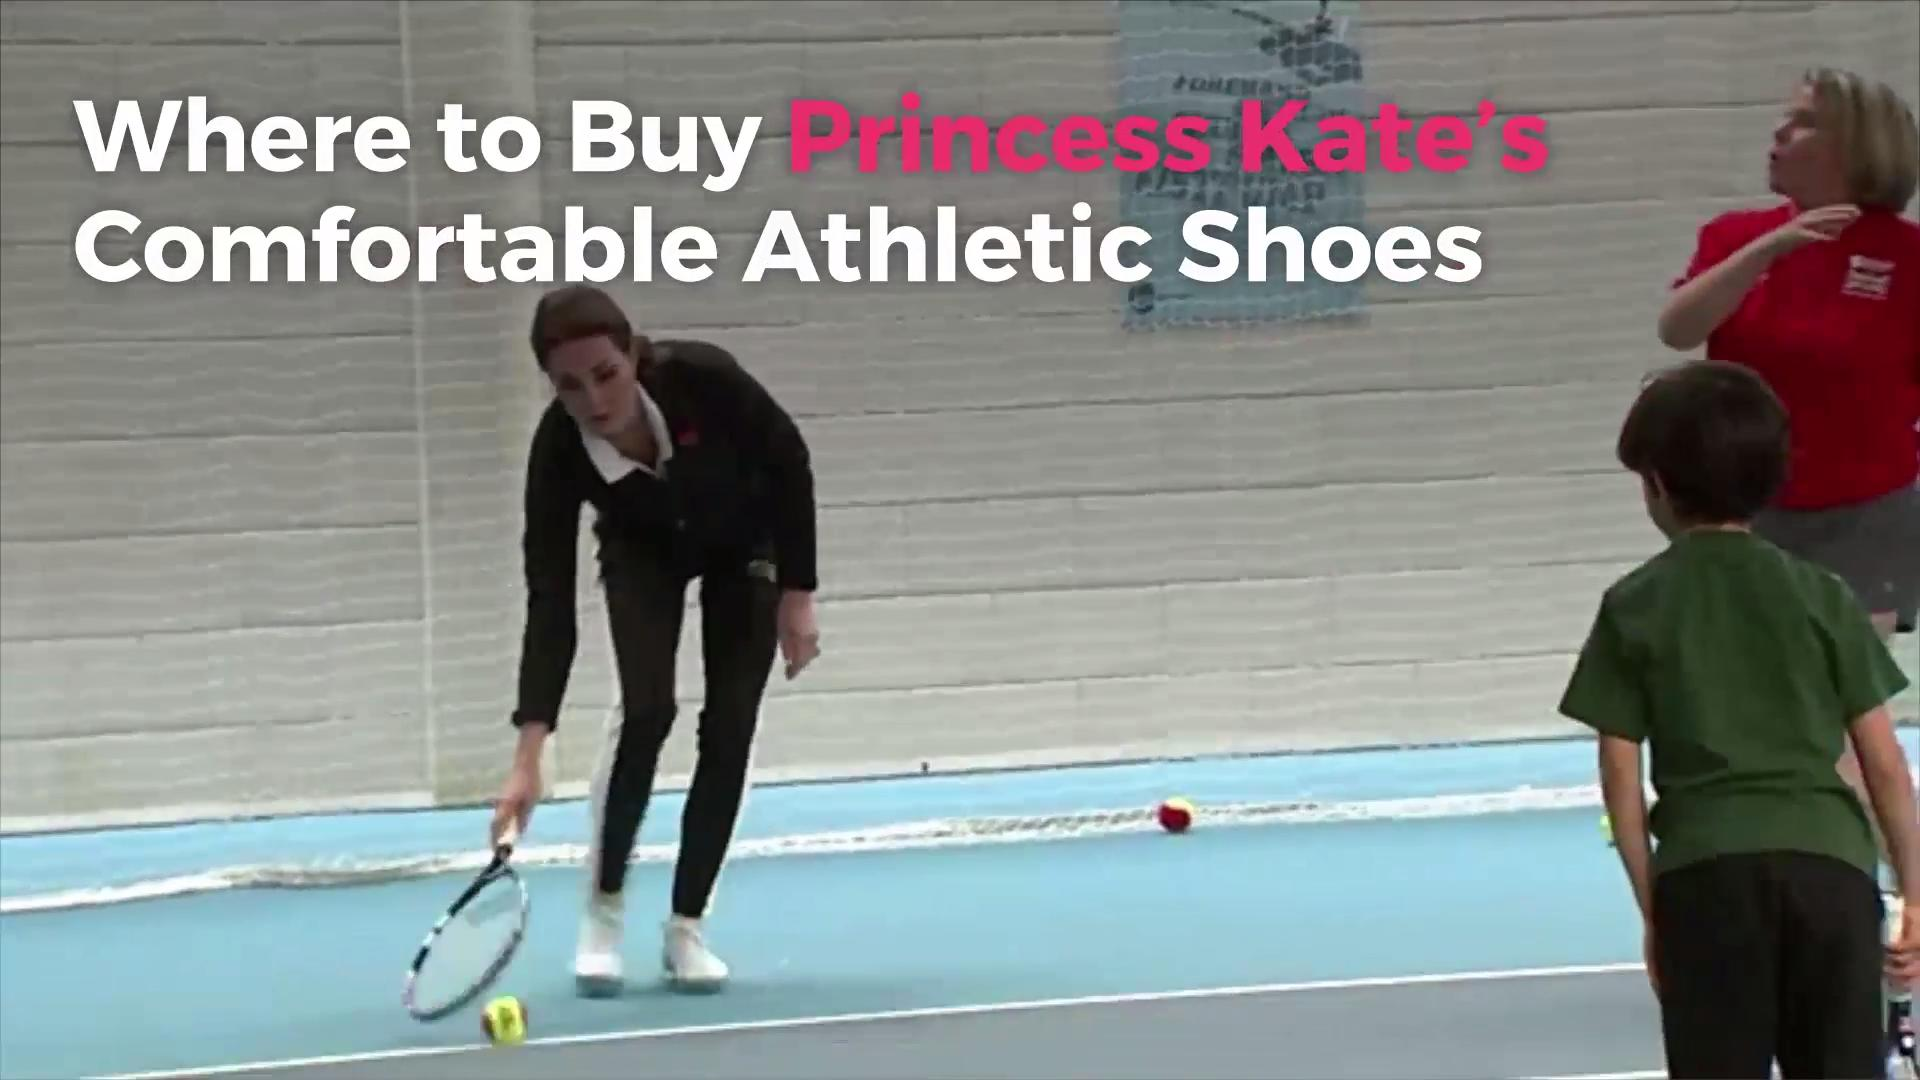 Where to Buy Princess Kate's Comfortable Athletic Shoes